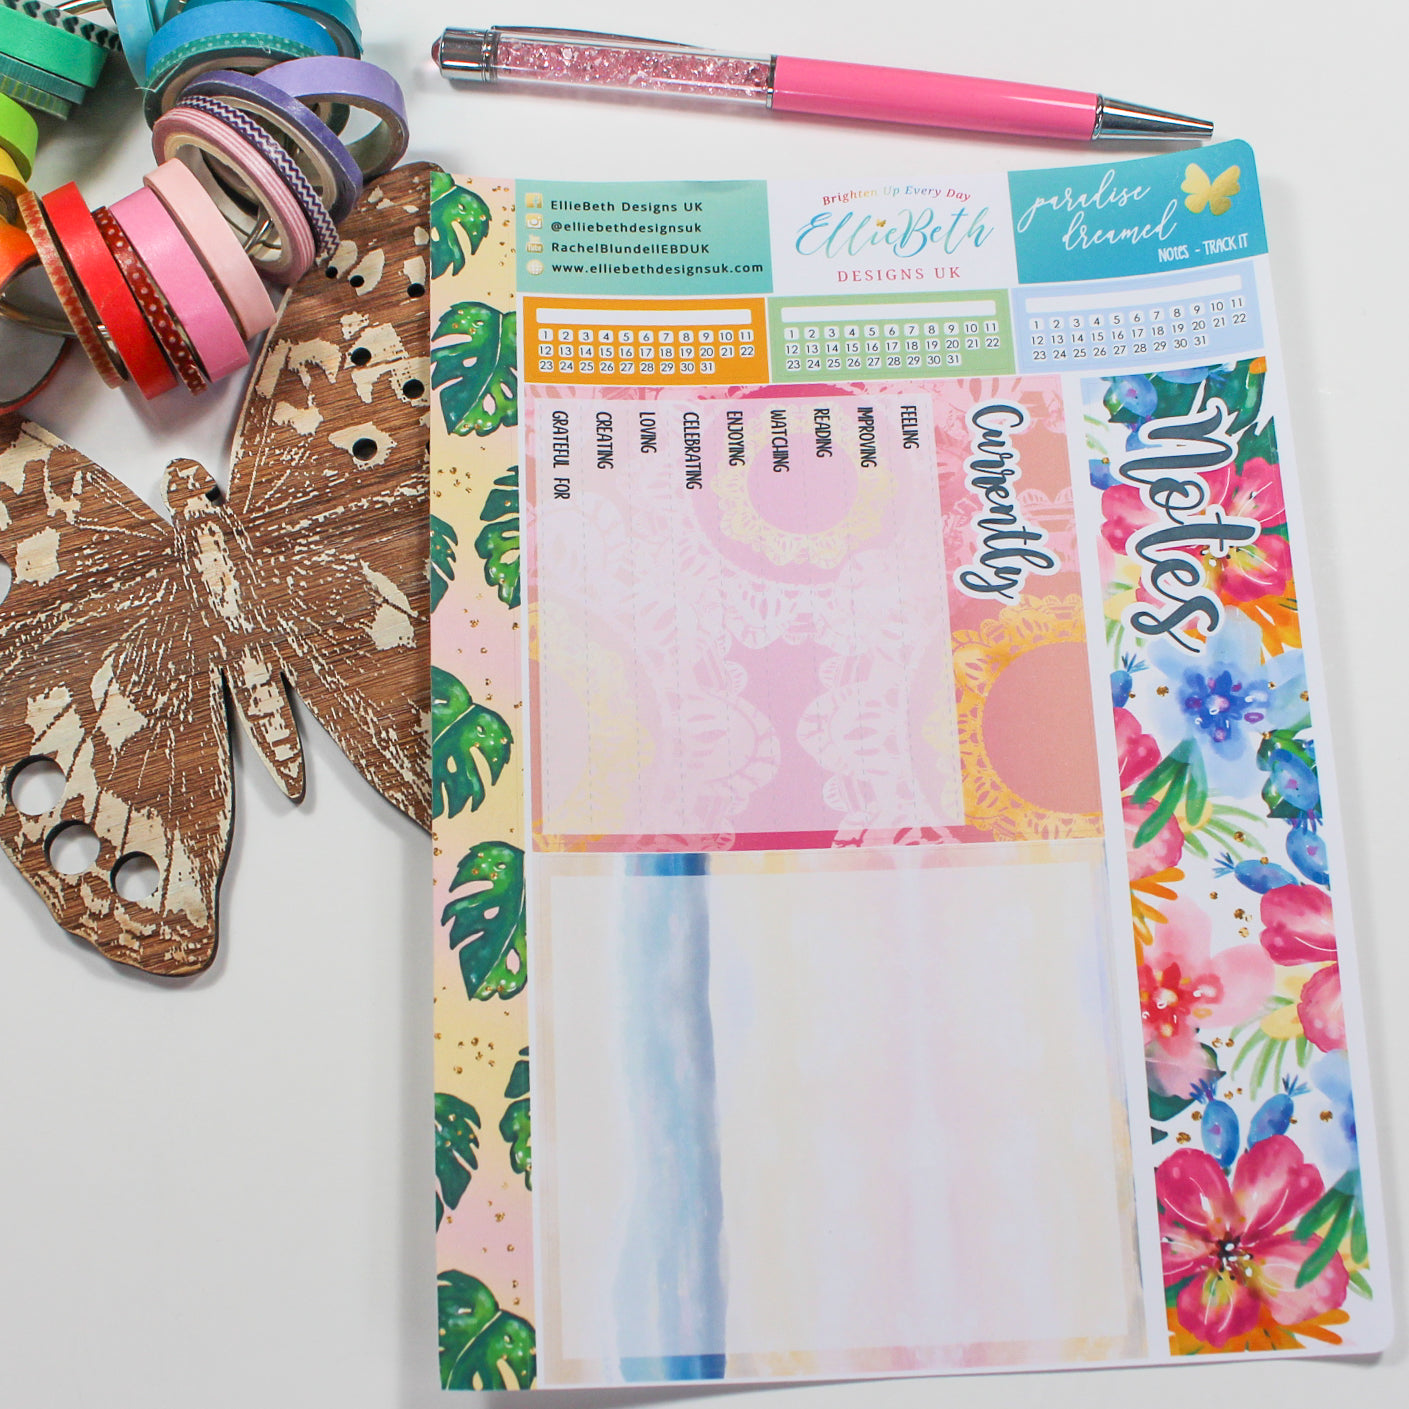 'Paradise Dreamed' - Notes Page Options - A5 binder ready planner stickers